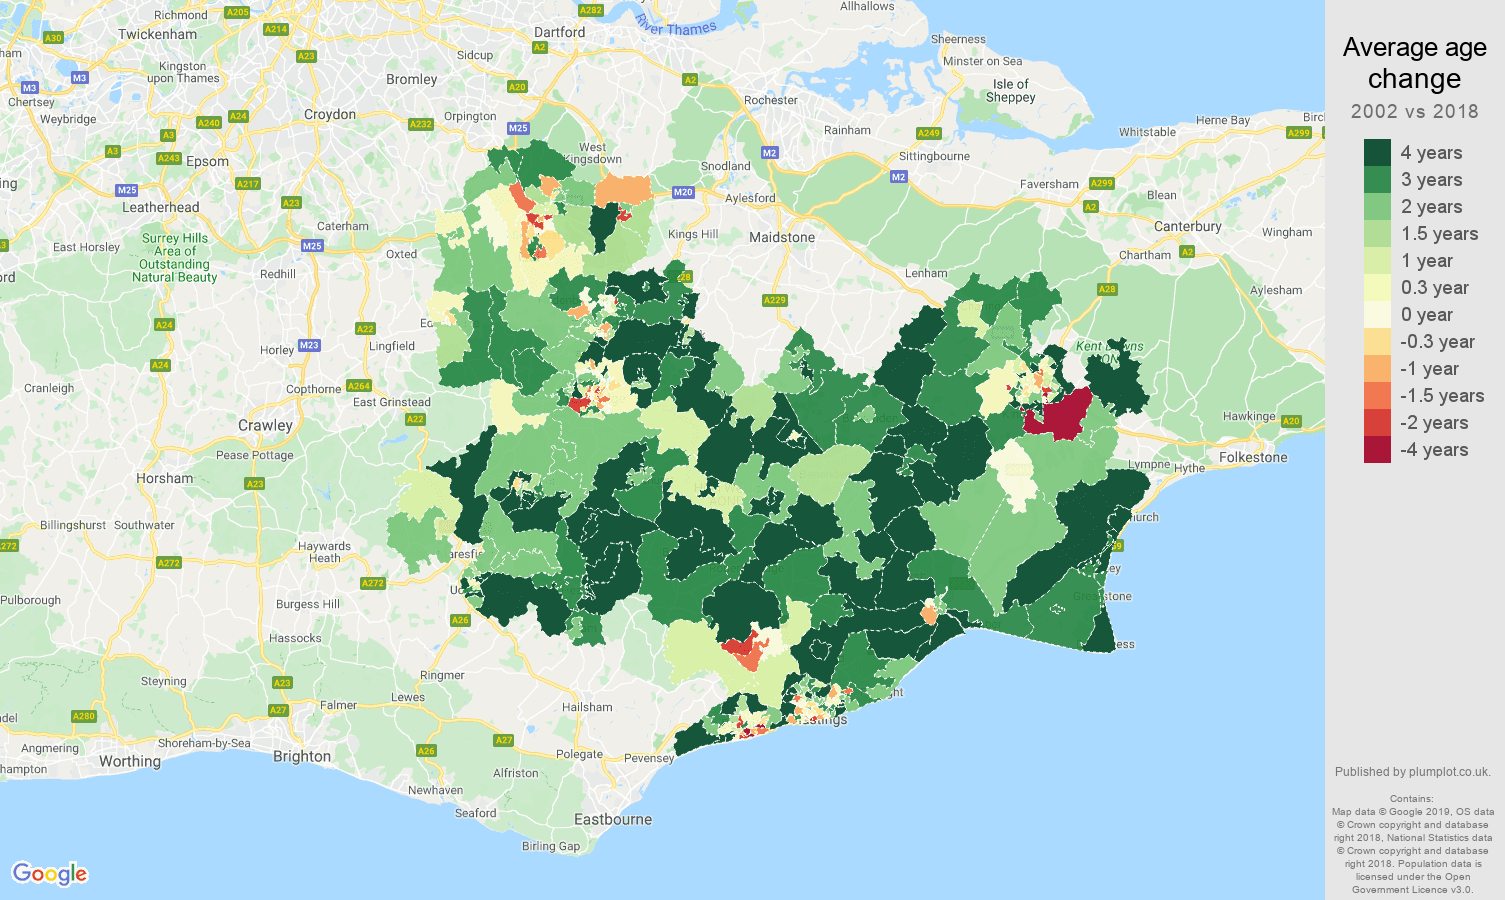 Tonbridge average age change map